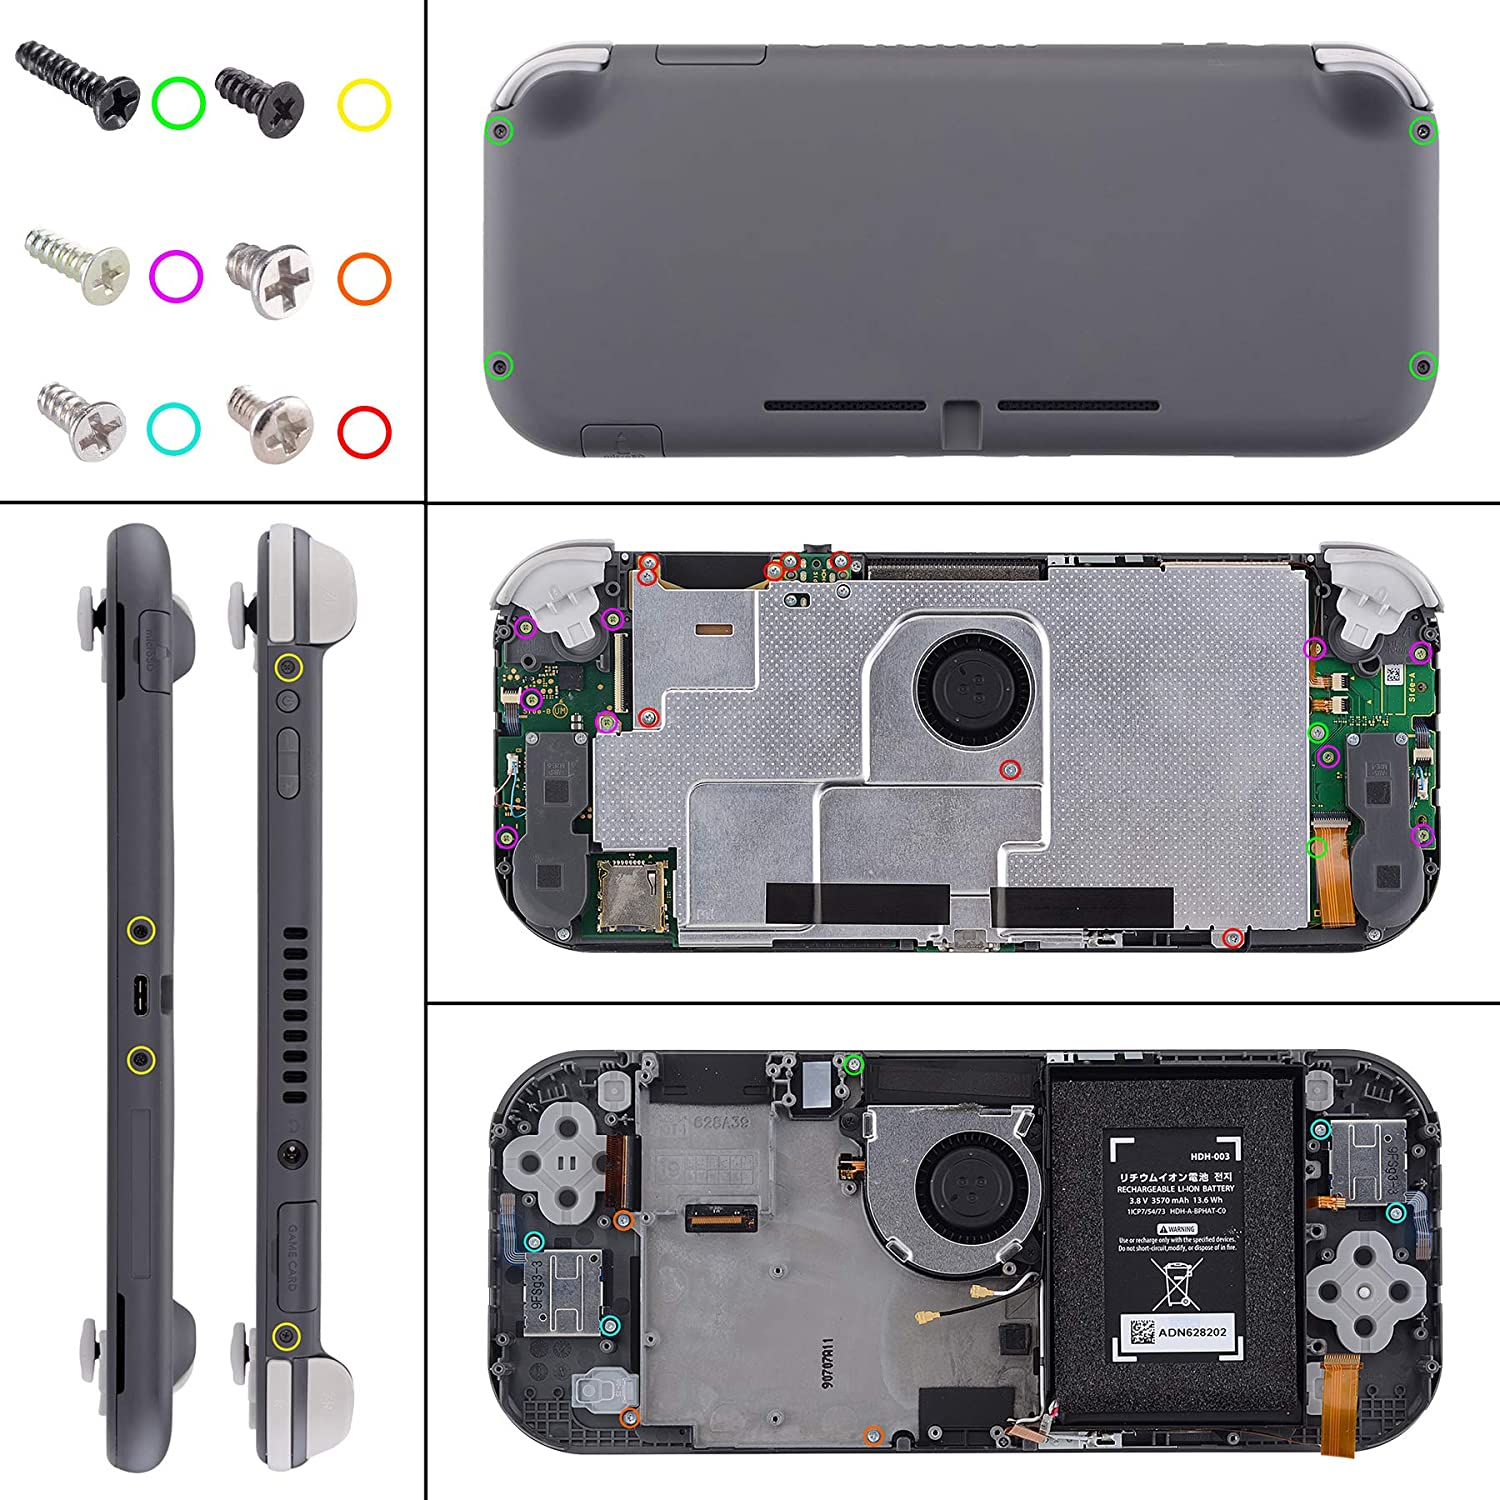 eXtremeRate Soft Touch Black DIY Replacement Shell for Nintendo Switch Lite, NSL Handheld Controller Housing w/Screen Protector, Custom Case Cover for Nintendo Switch Lite: Computers & Accessories